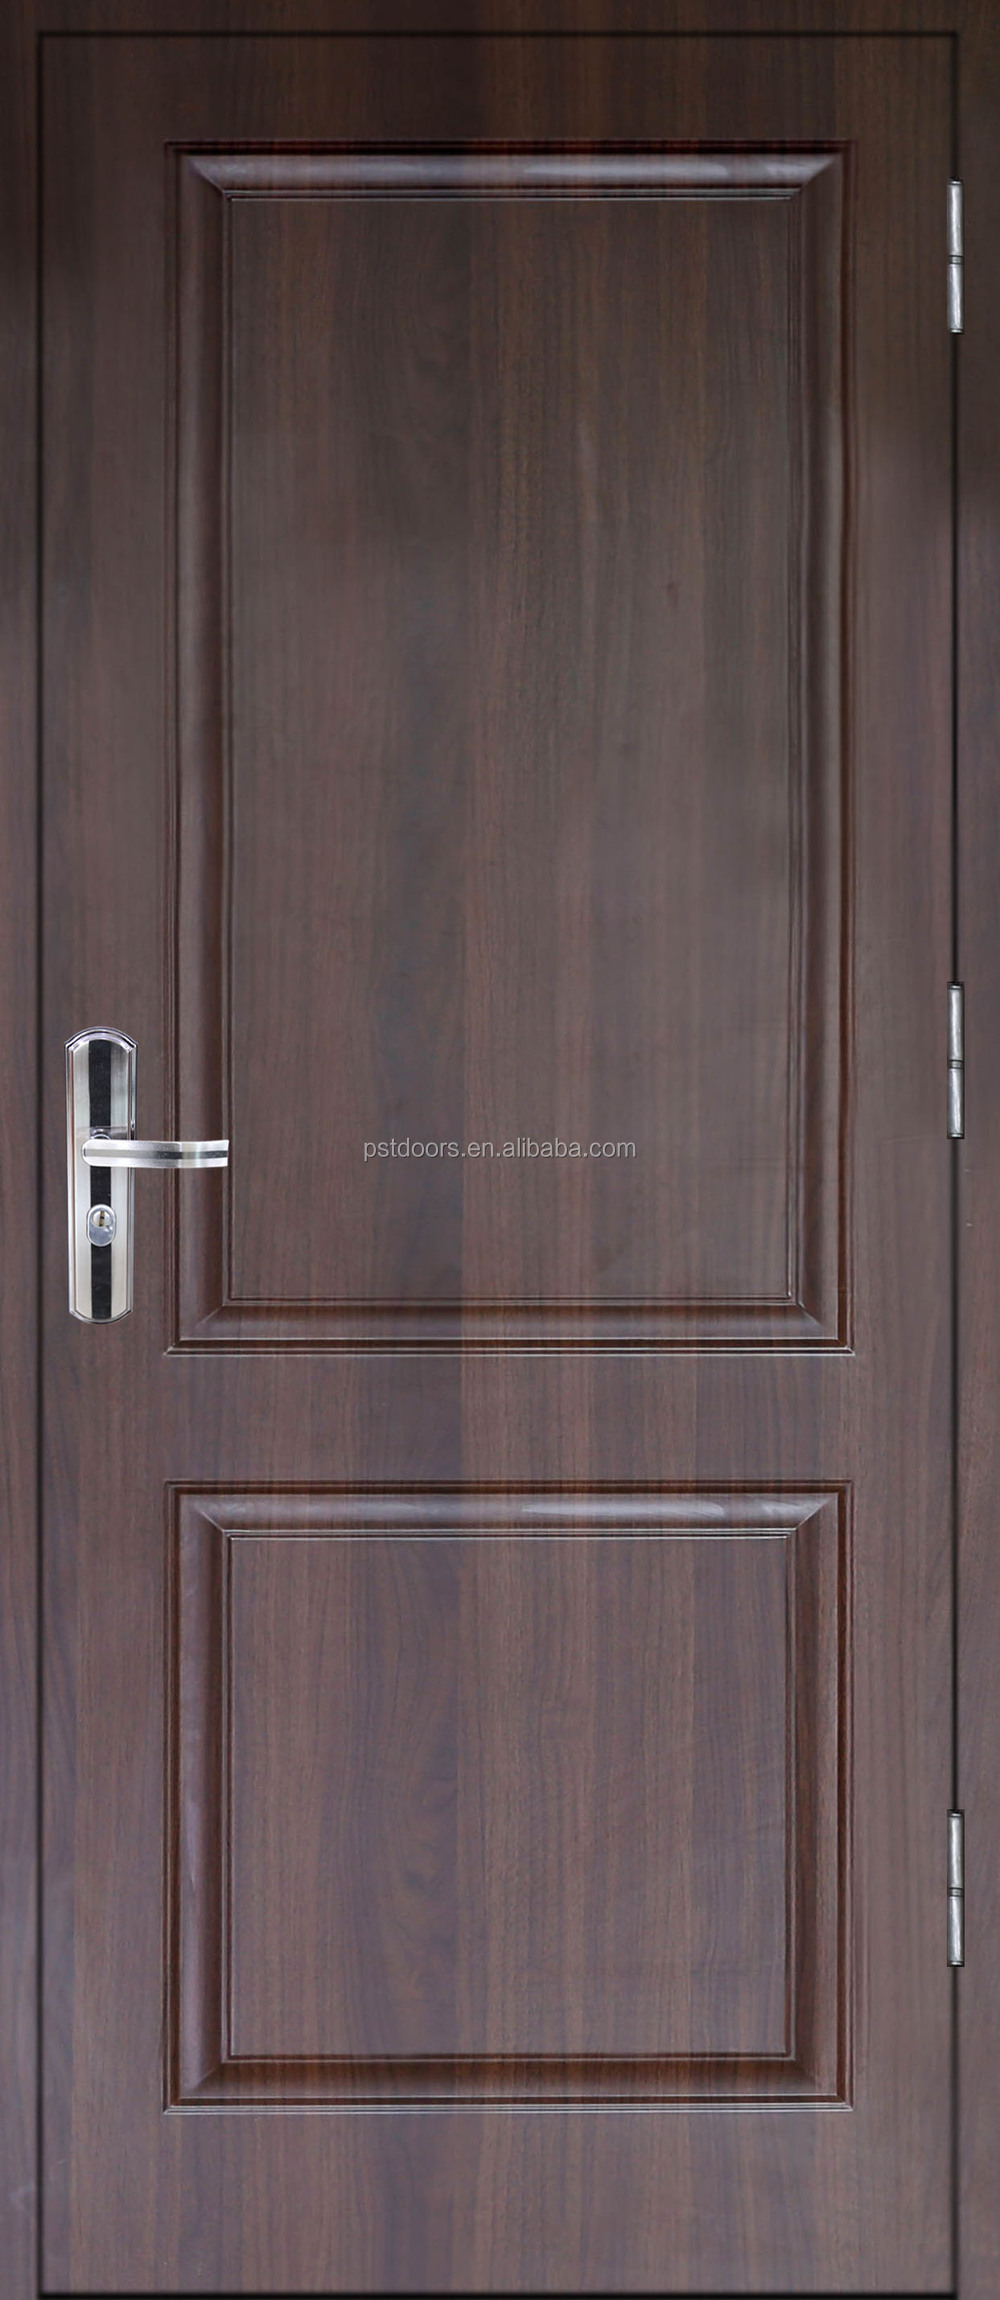 36 12 80 exterior steel door with side lite steel for 12 lite door